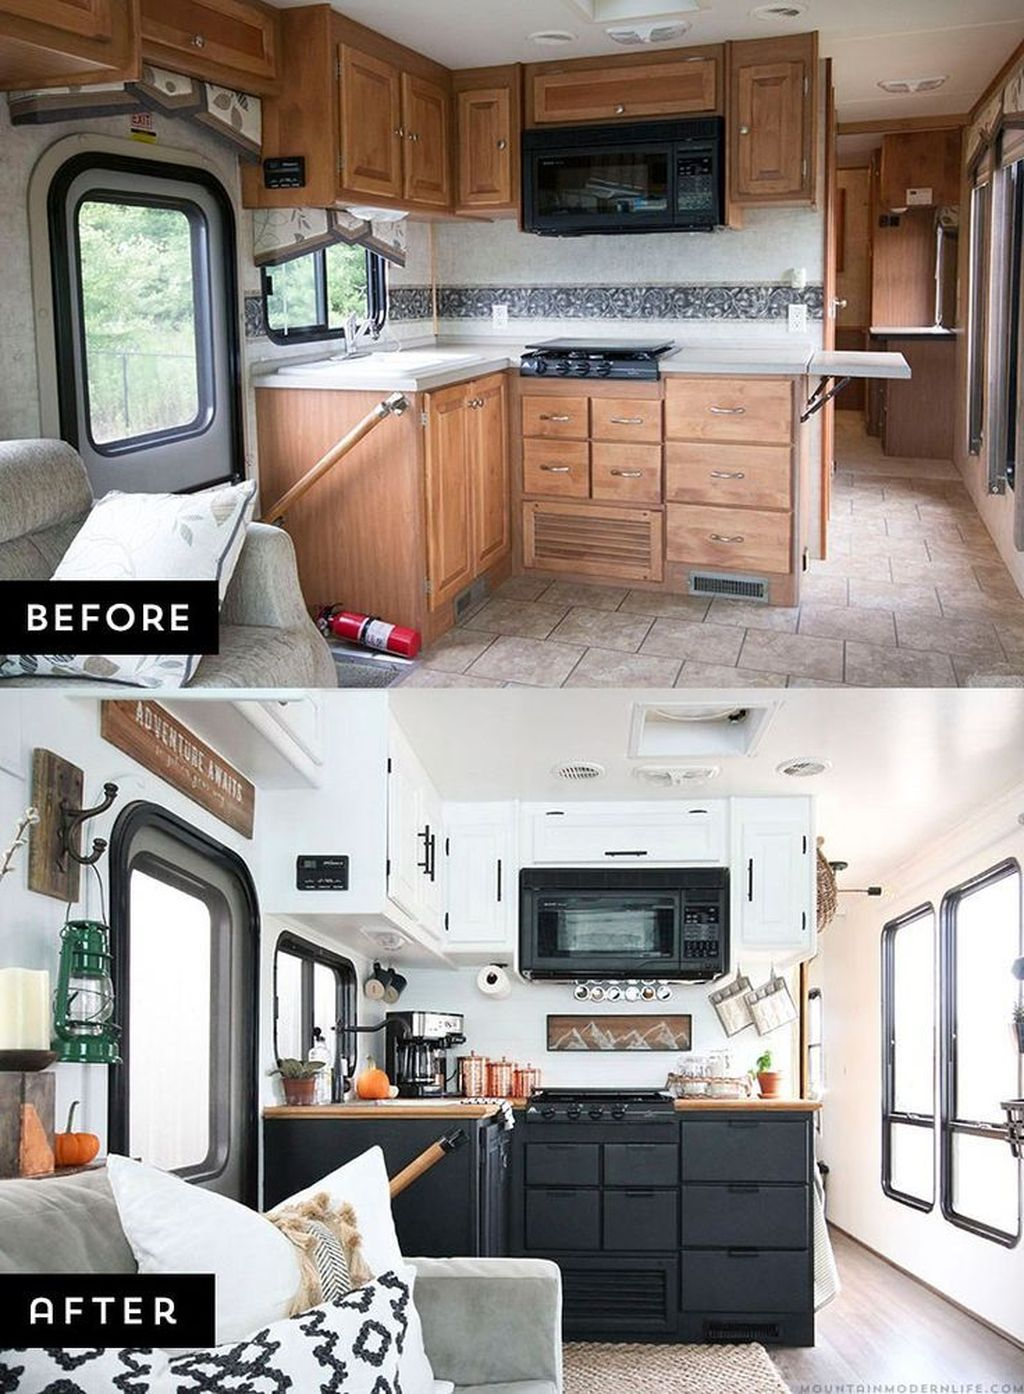 Enchanting Airstream Rv Design And Decoration Ideas For Your Travel Comfort41